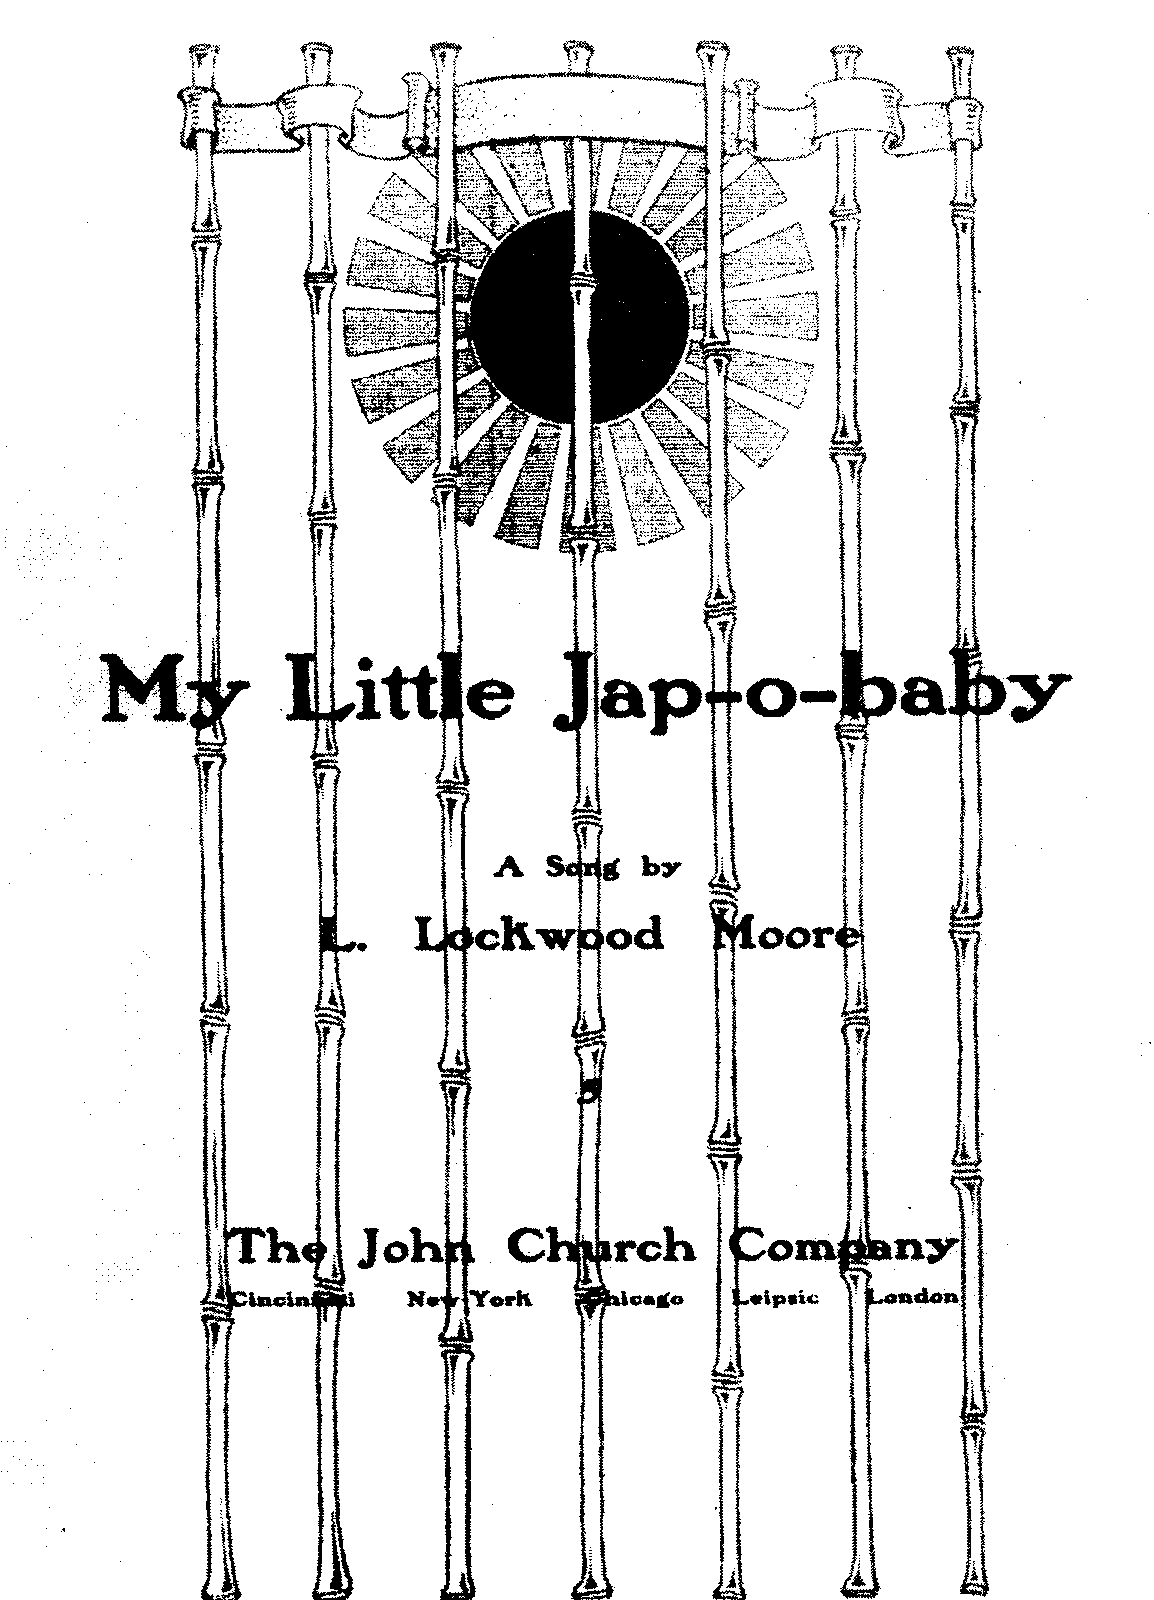 PMLP230532-Moore My Little Jap-o-baby cropped.pdf